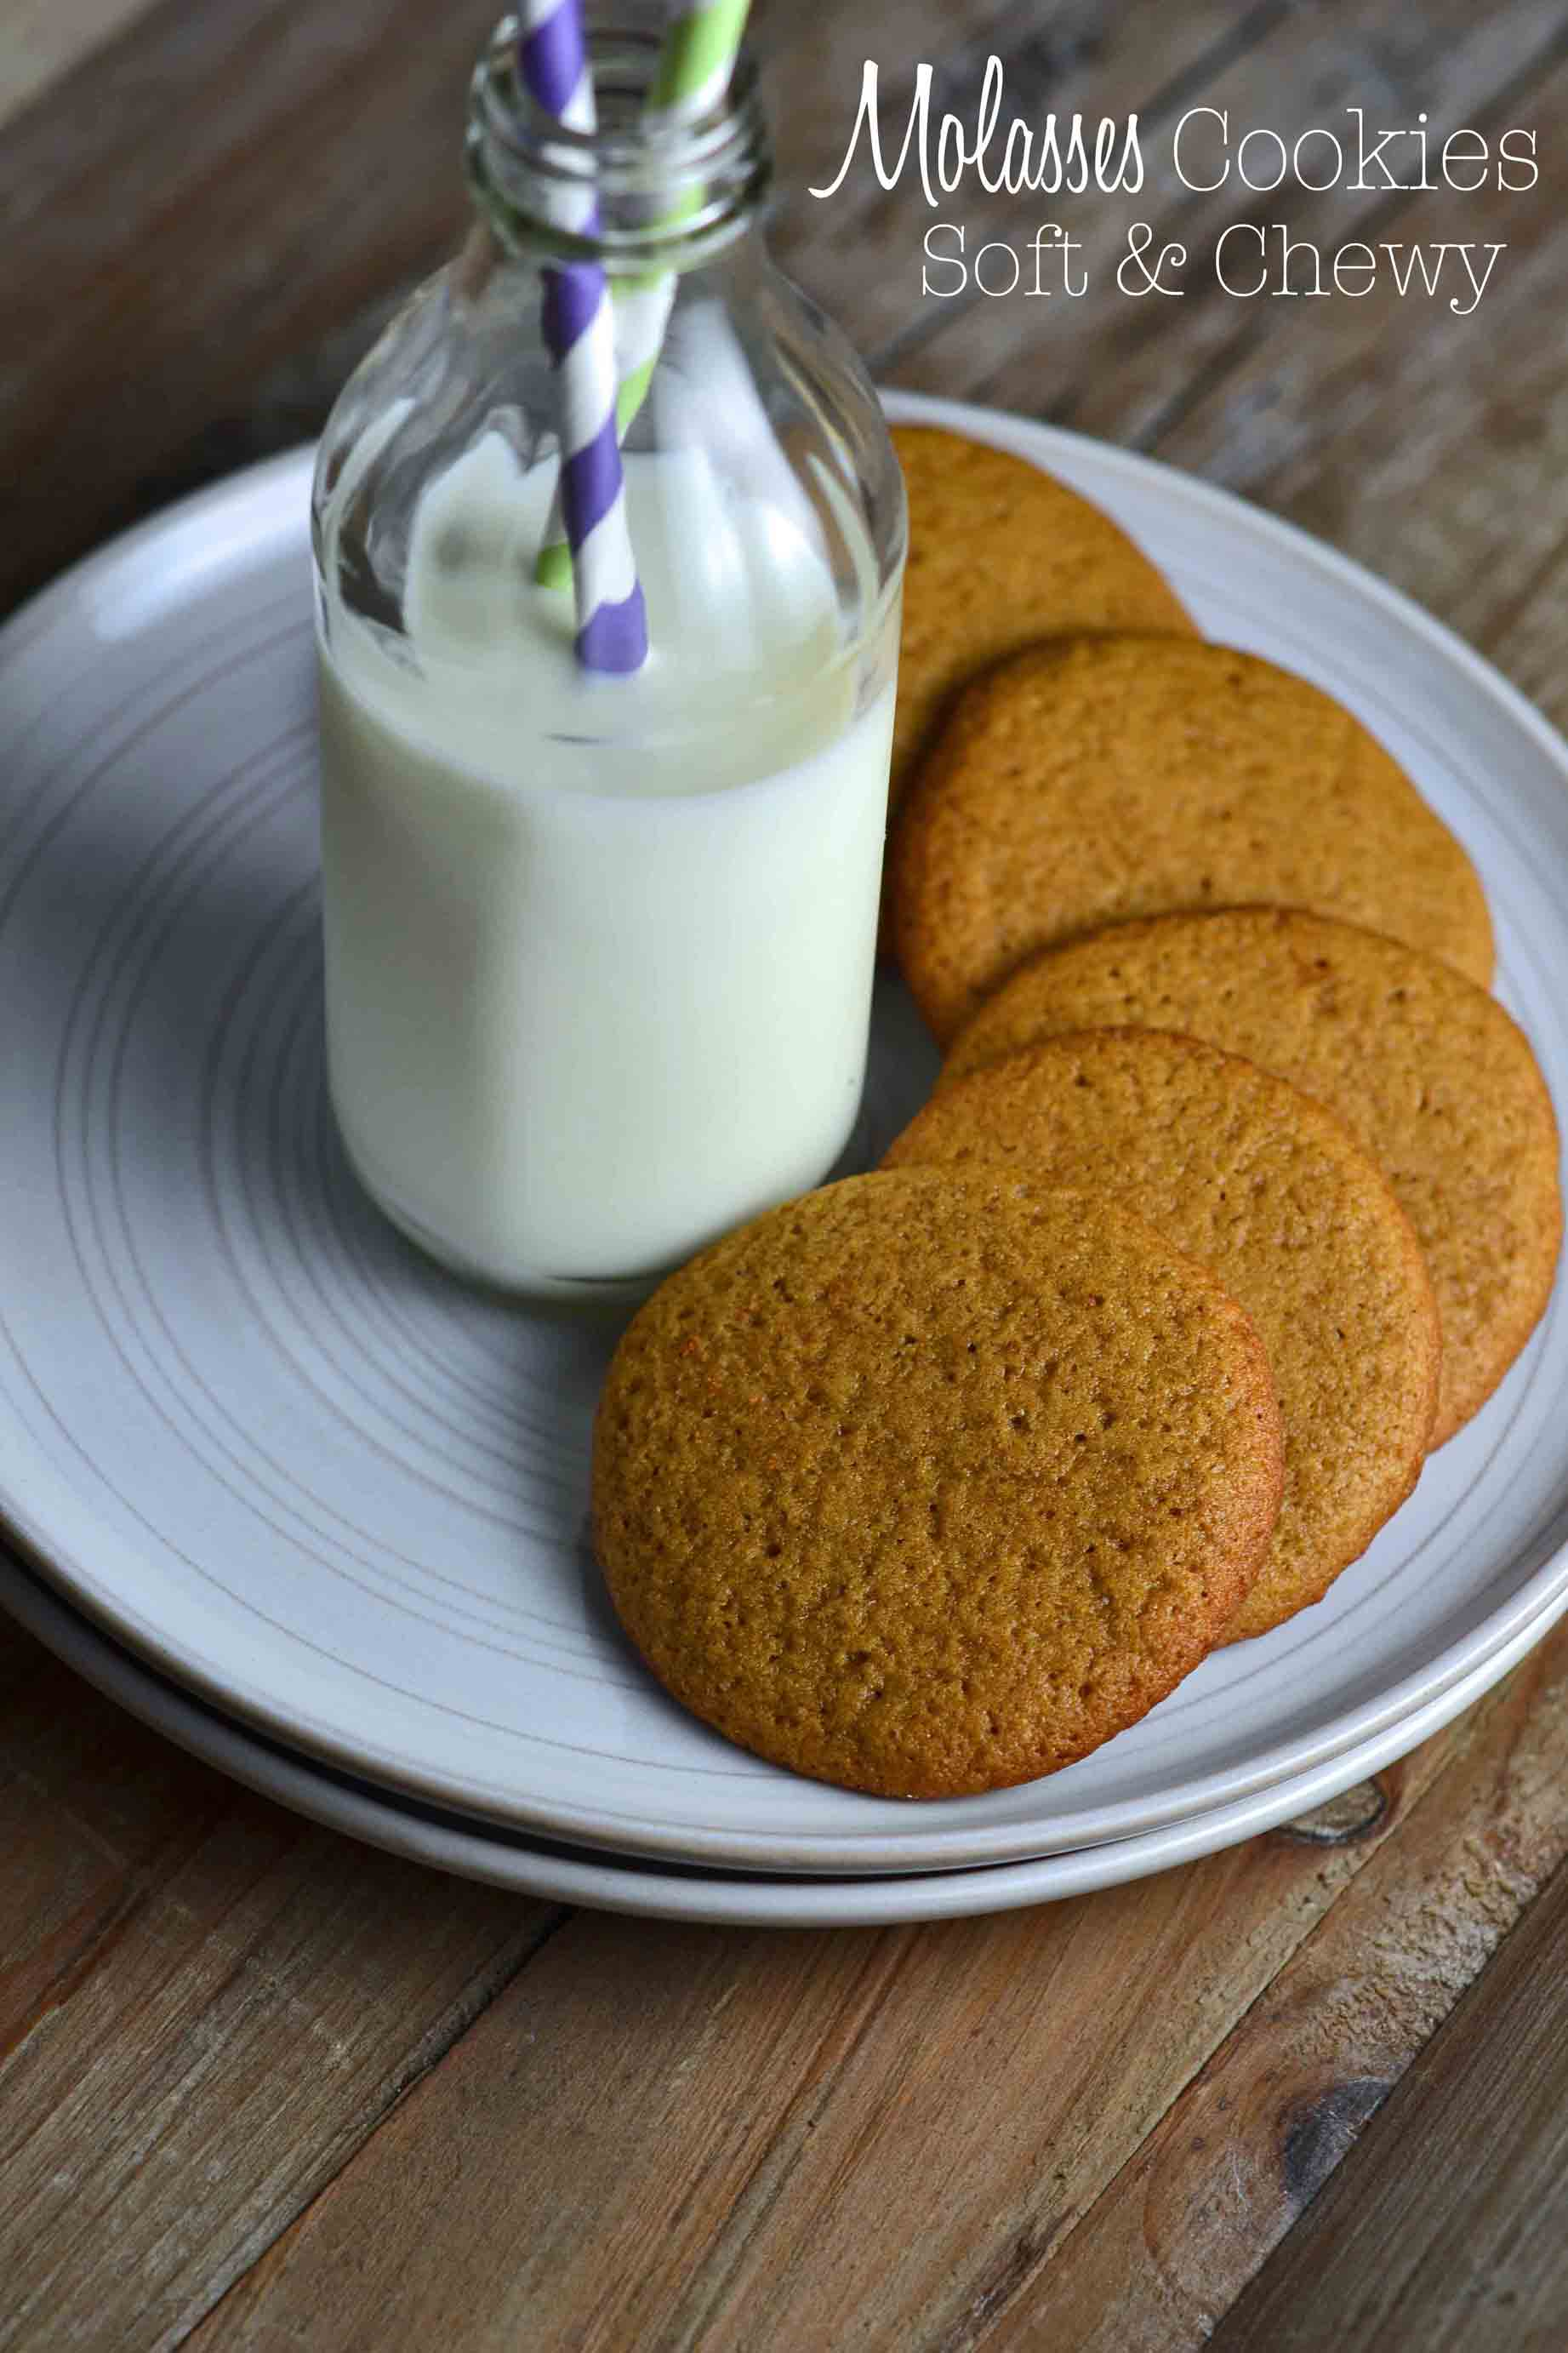 for nostalgia . When we made gluten-free Iced Oatmeal Cookies ...